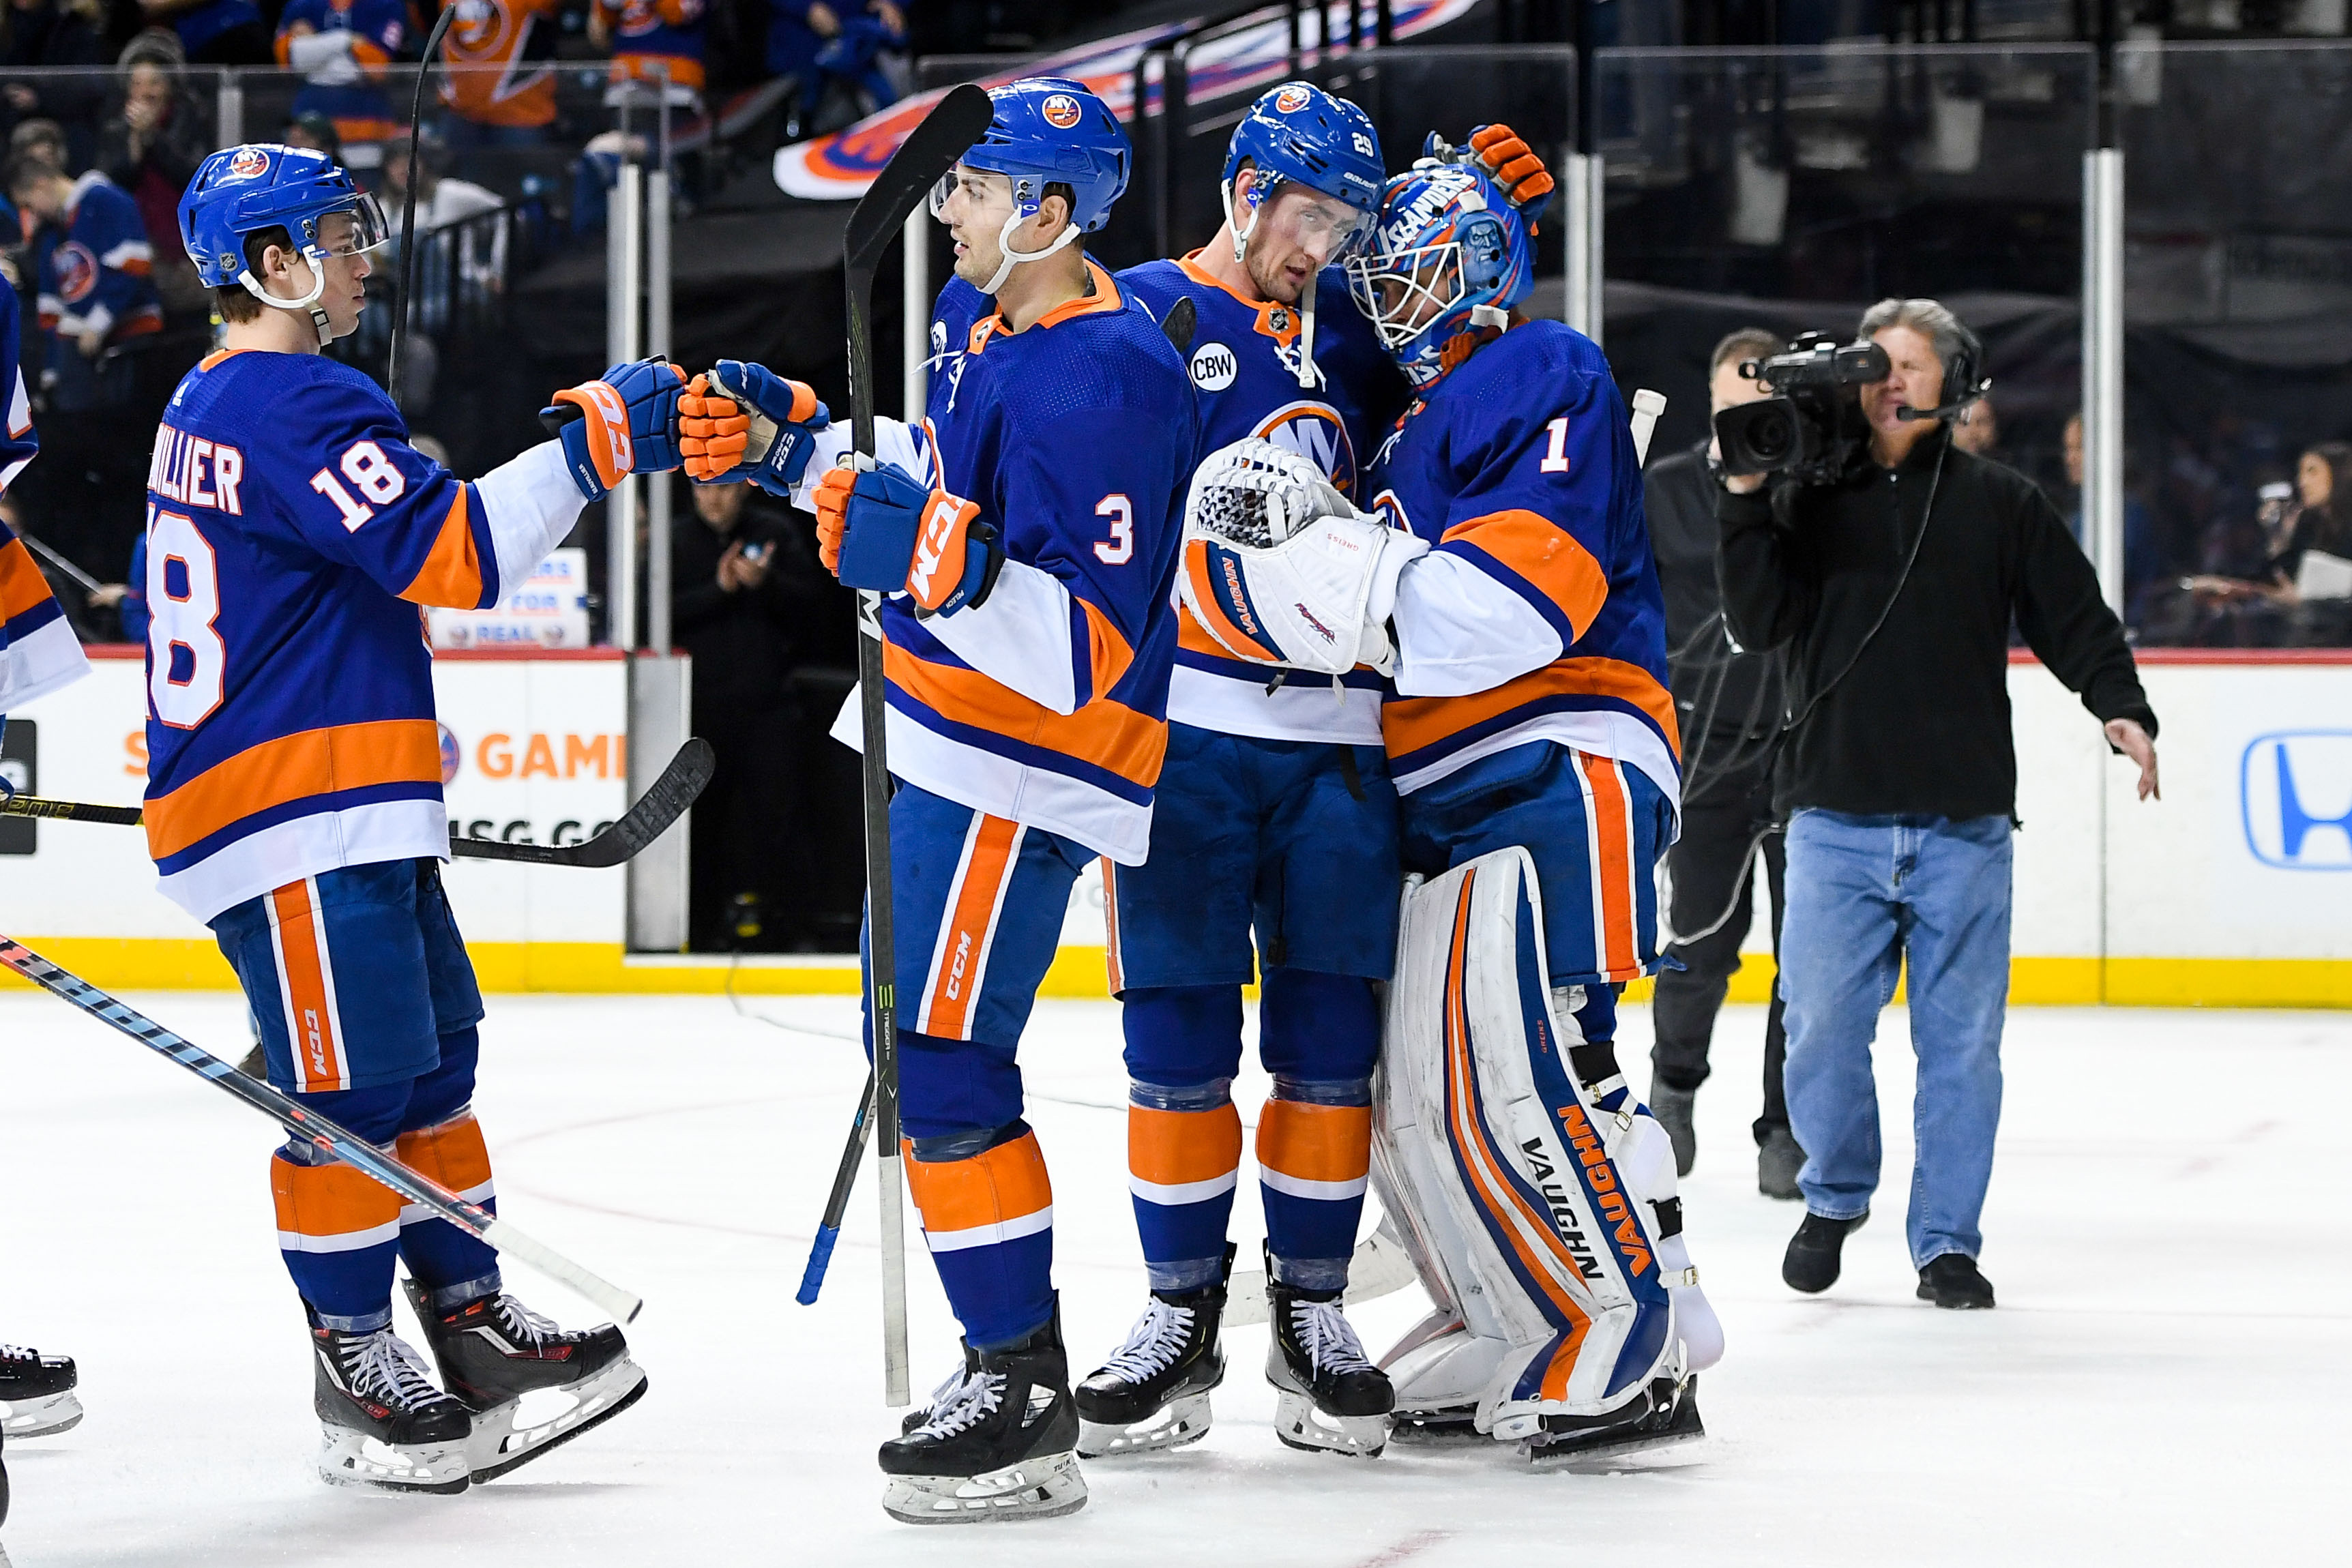 Feb 10, 2019; Brooklyn, NY, USA; New York Islanders center Brock Nelson (29) celebrates with Islanders goaltender Thomas Greiss (1) after defeating the against the Minnesota Wild at Barclays Center. Mandatory Credit: Dennis Schneidler-USA TODAY Sports